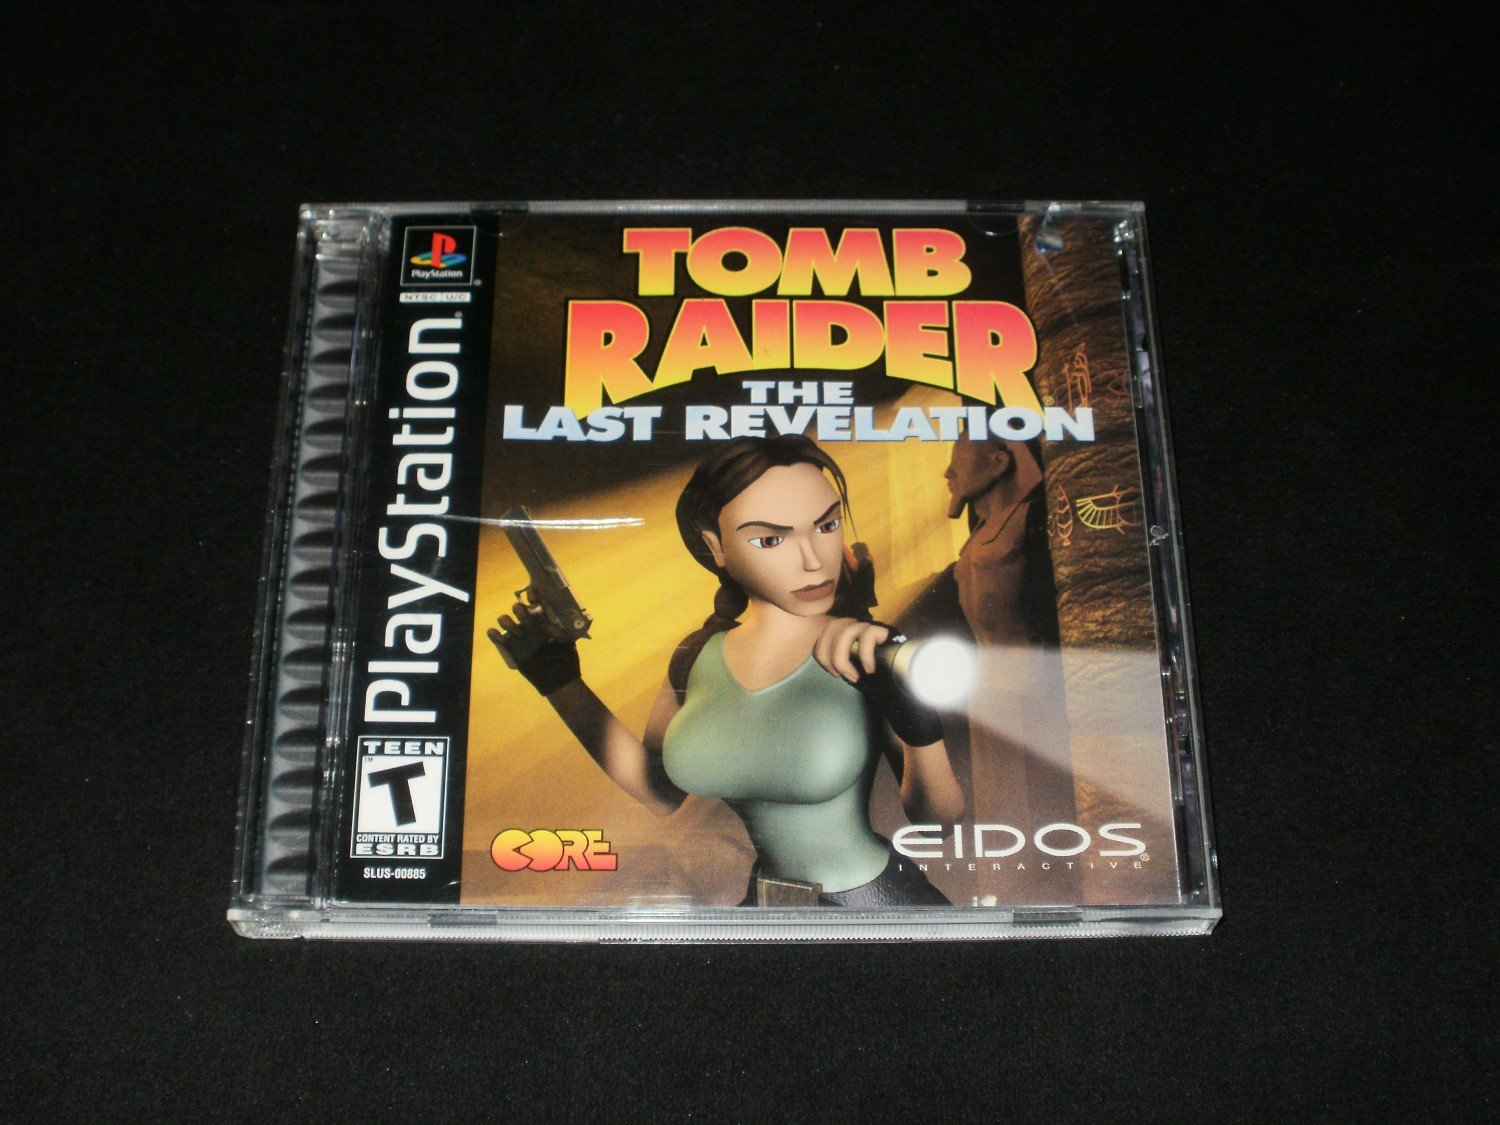 Tomb Raider The Last Revelation - Sony PS1 - Complete CIB